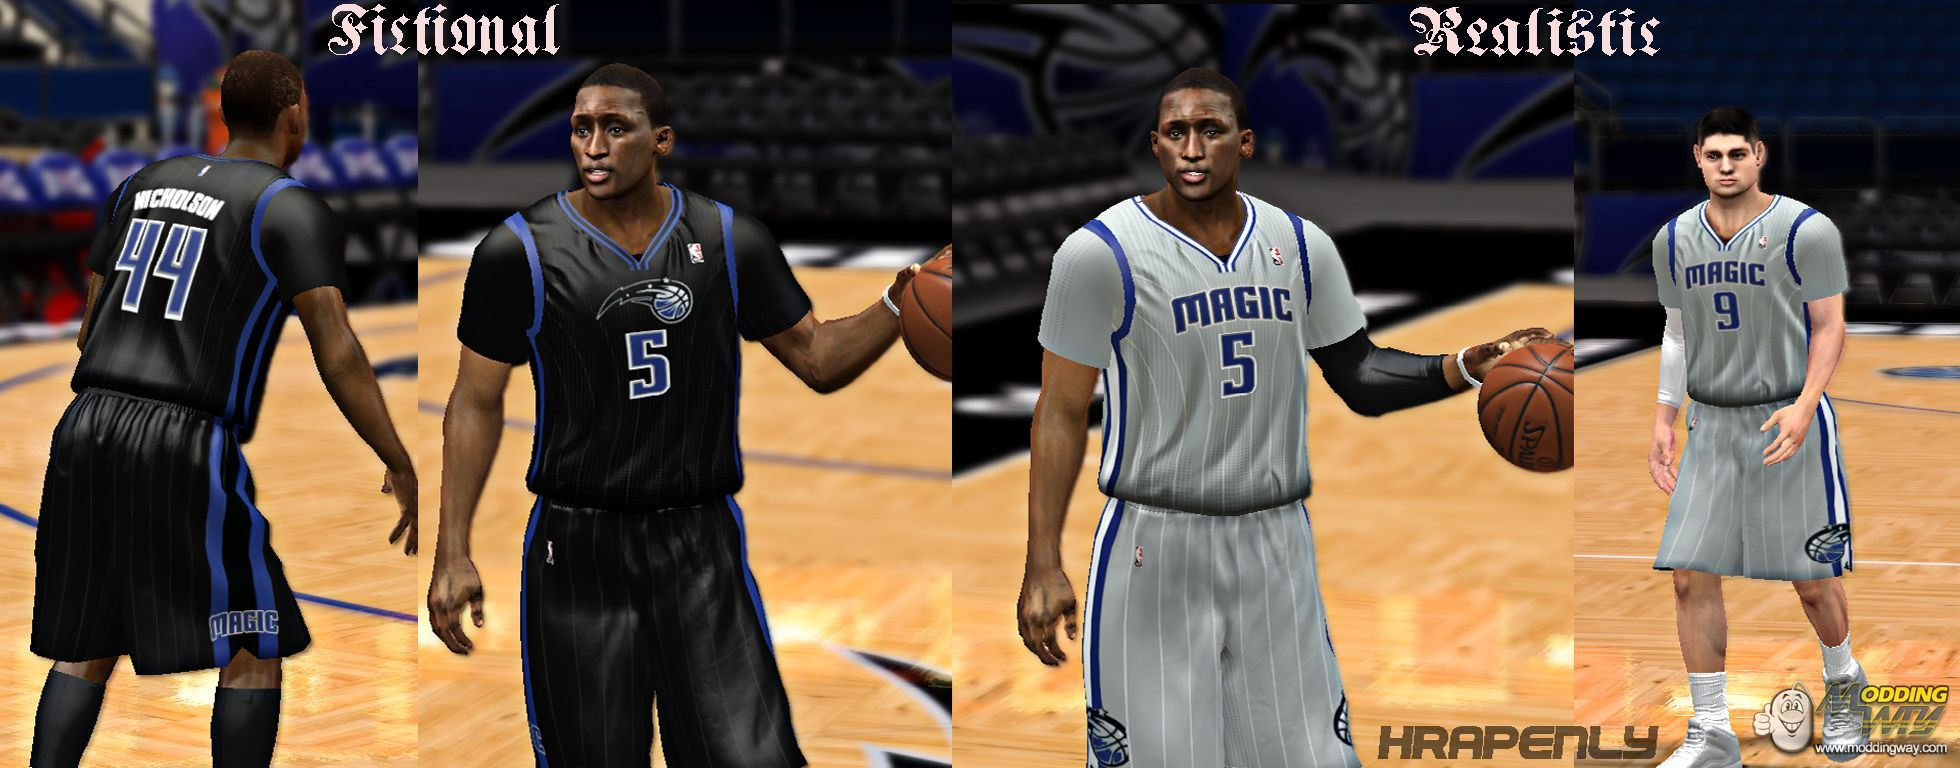 af37e4b51 Orlando Magic Jersey Update Orlando Magic Realistic Fictional sleeve jersey  - NBA 2K14 at ModdingWay ...